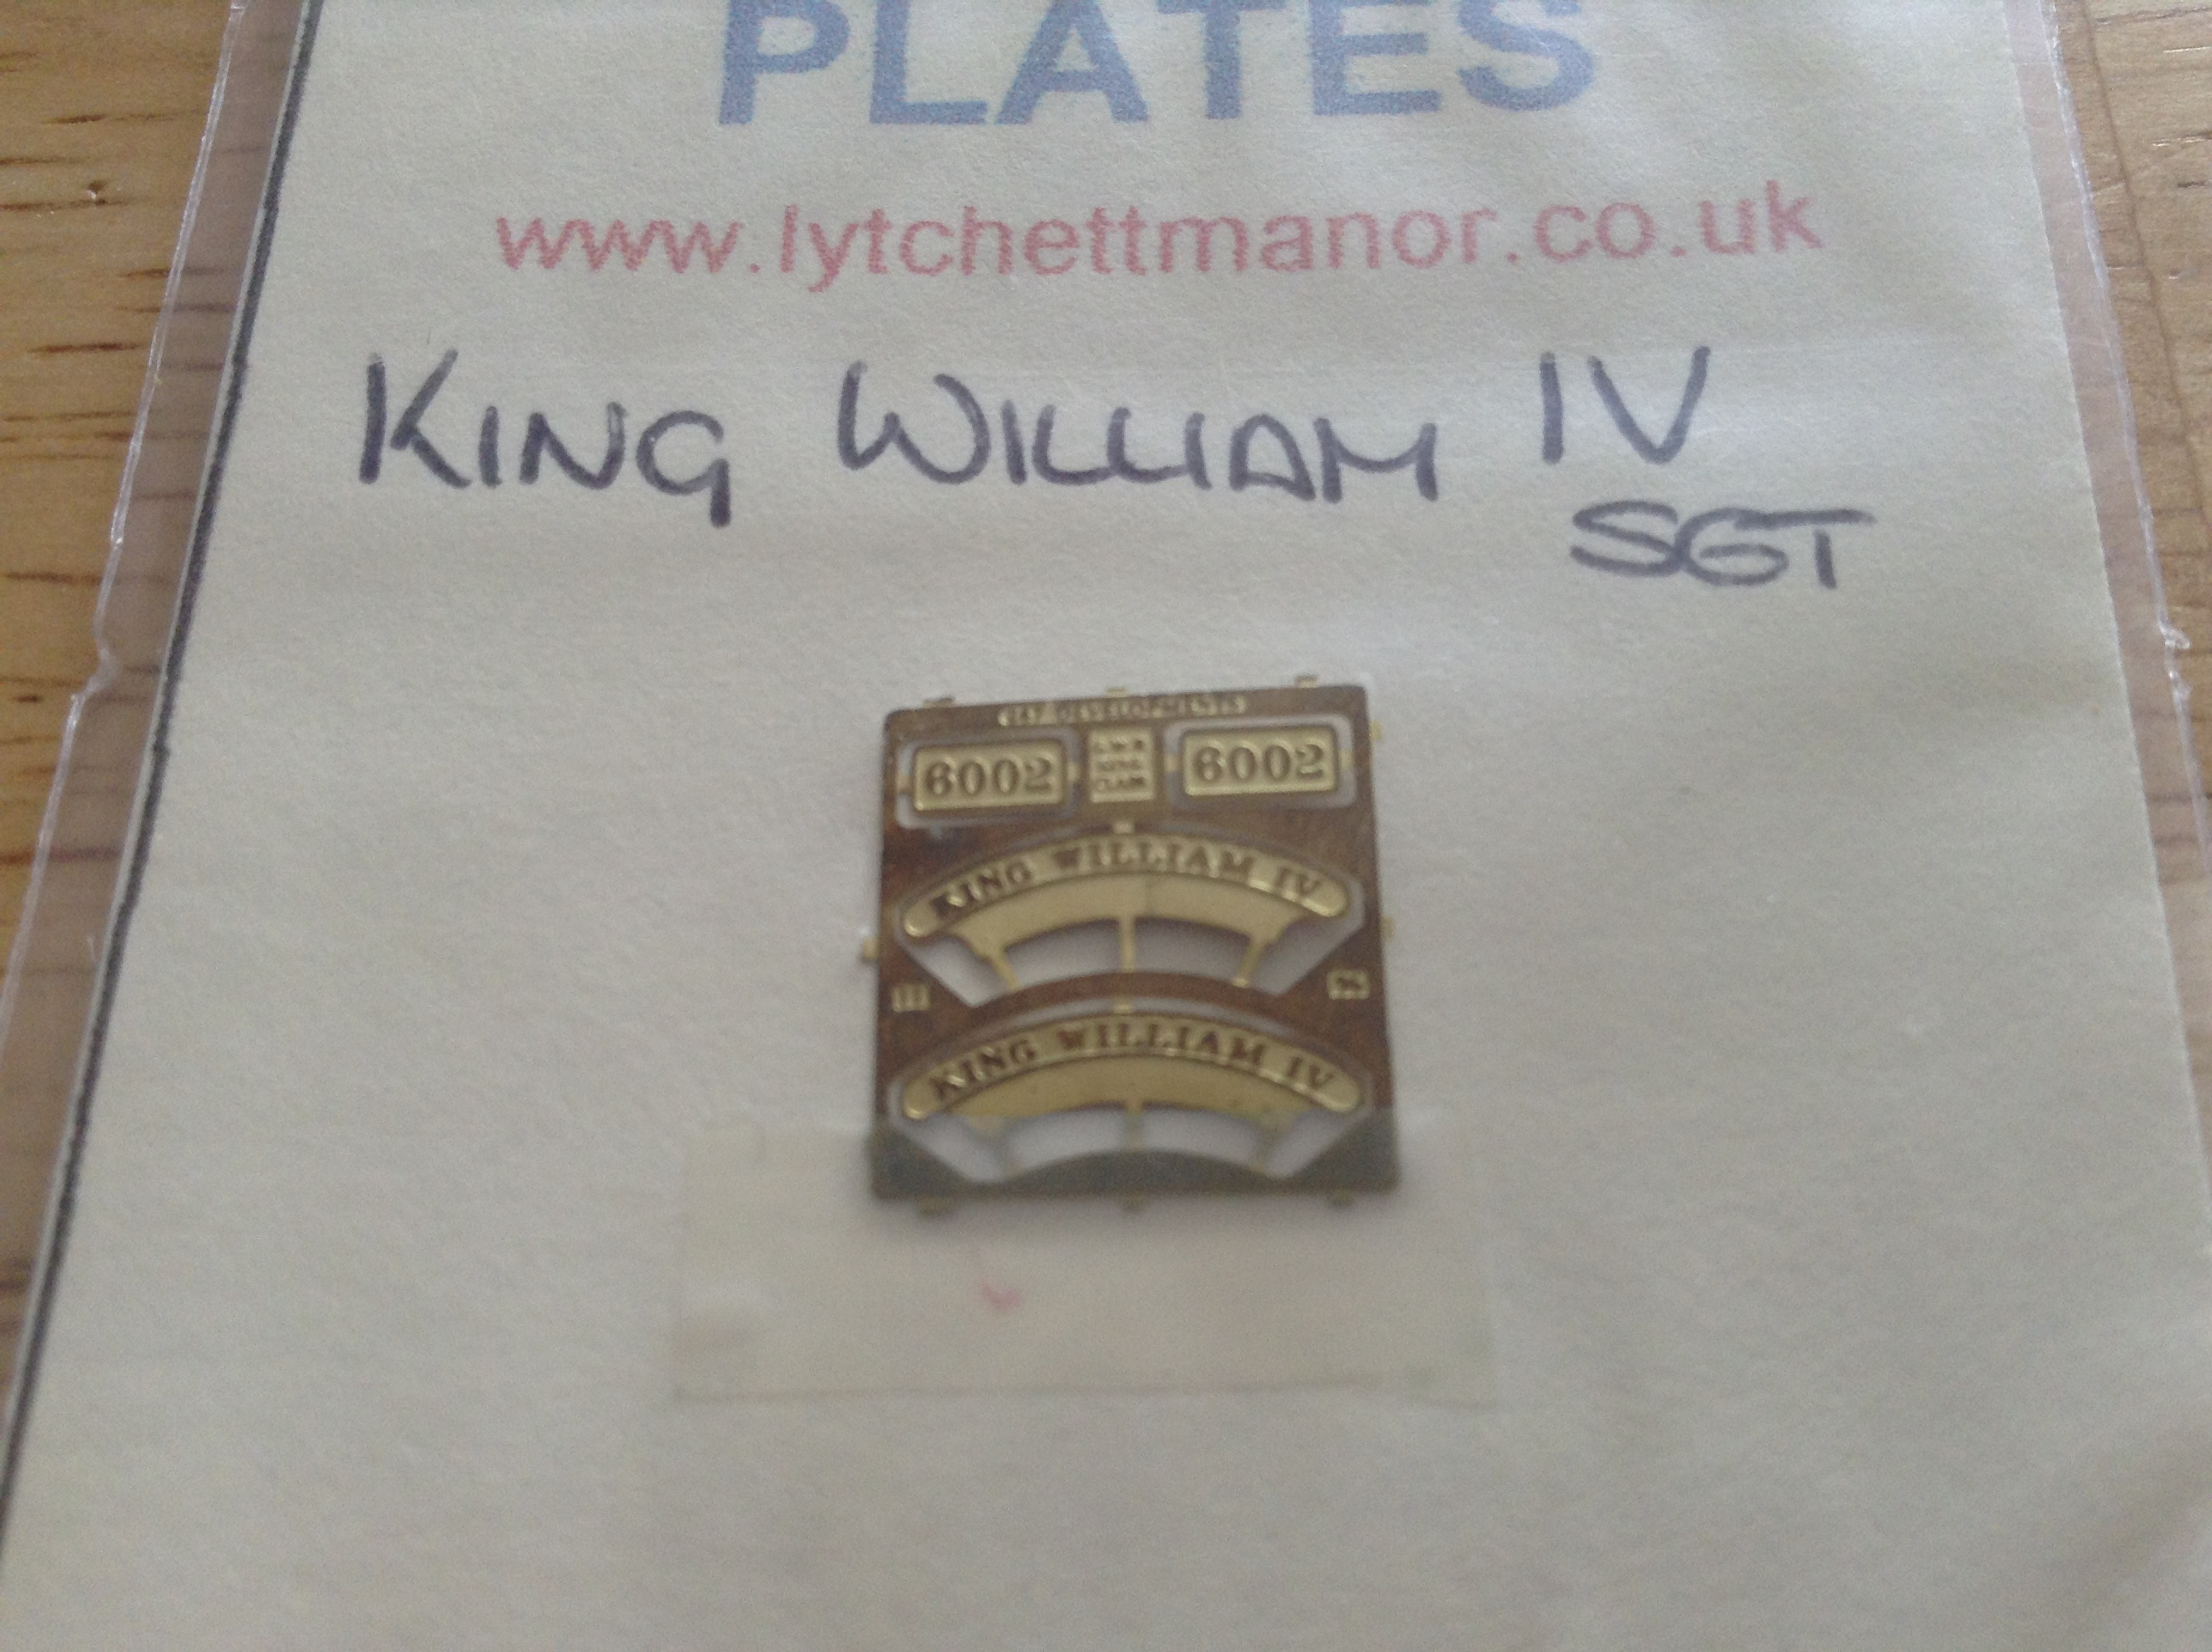 King William IV set UP